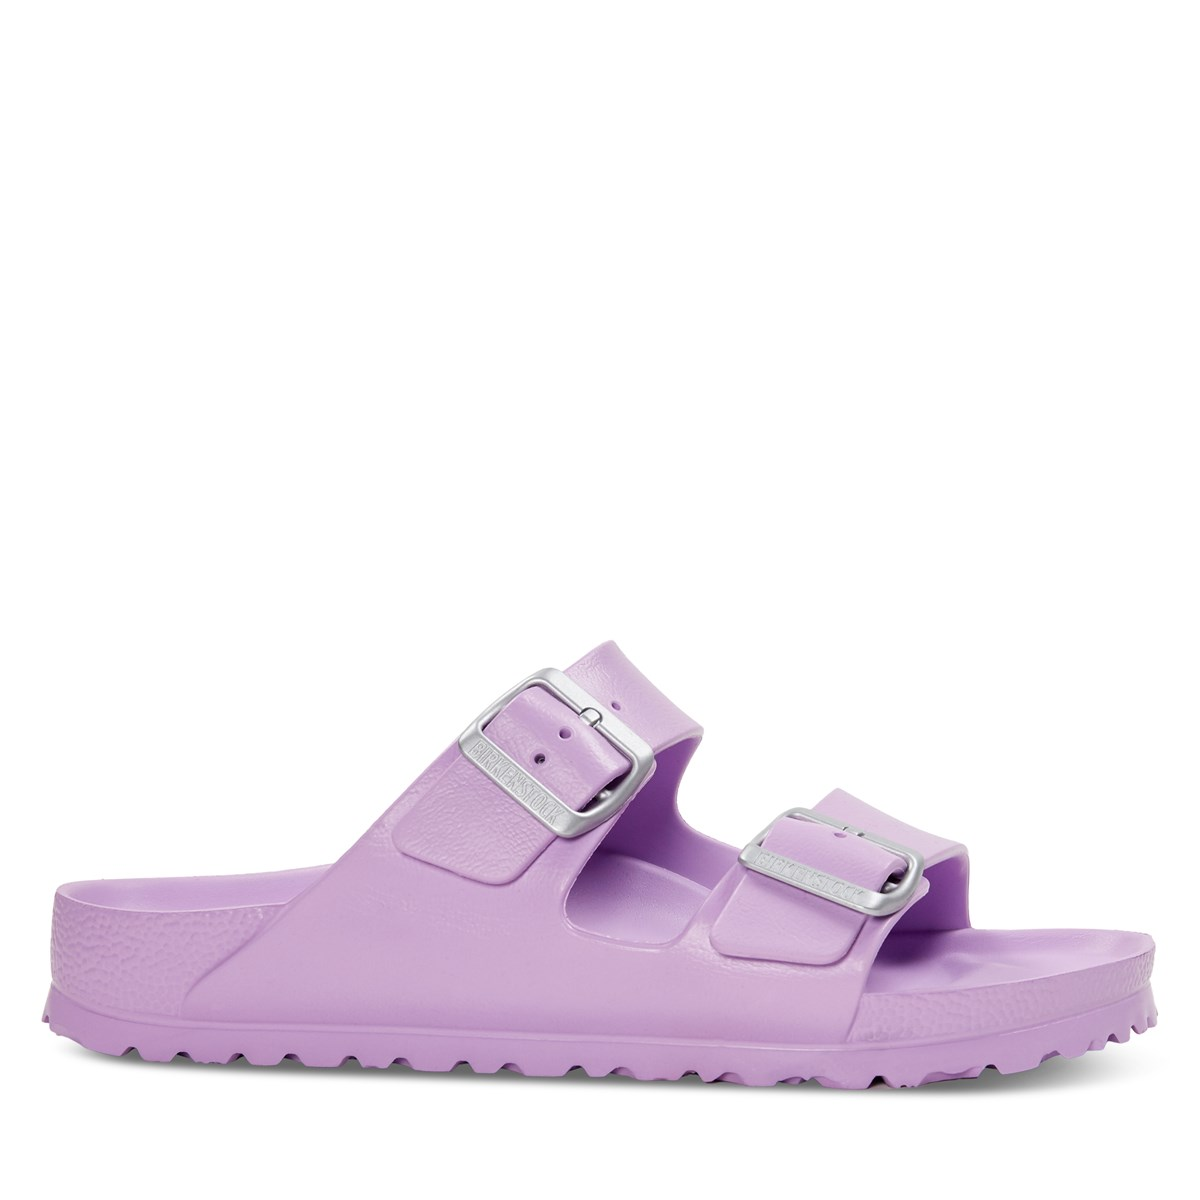 Women's Arizona EVA Sandal in Lavender